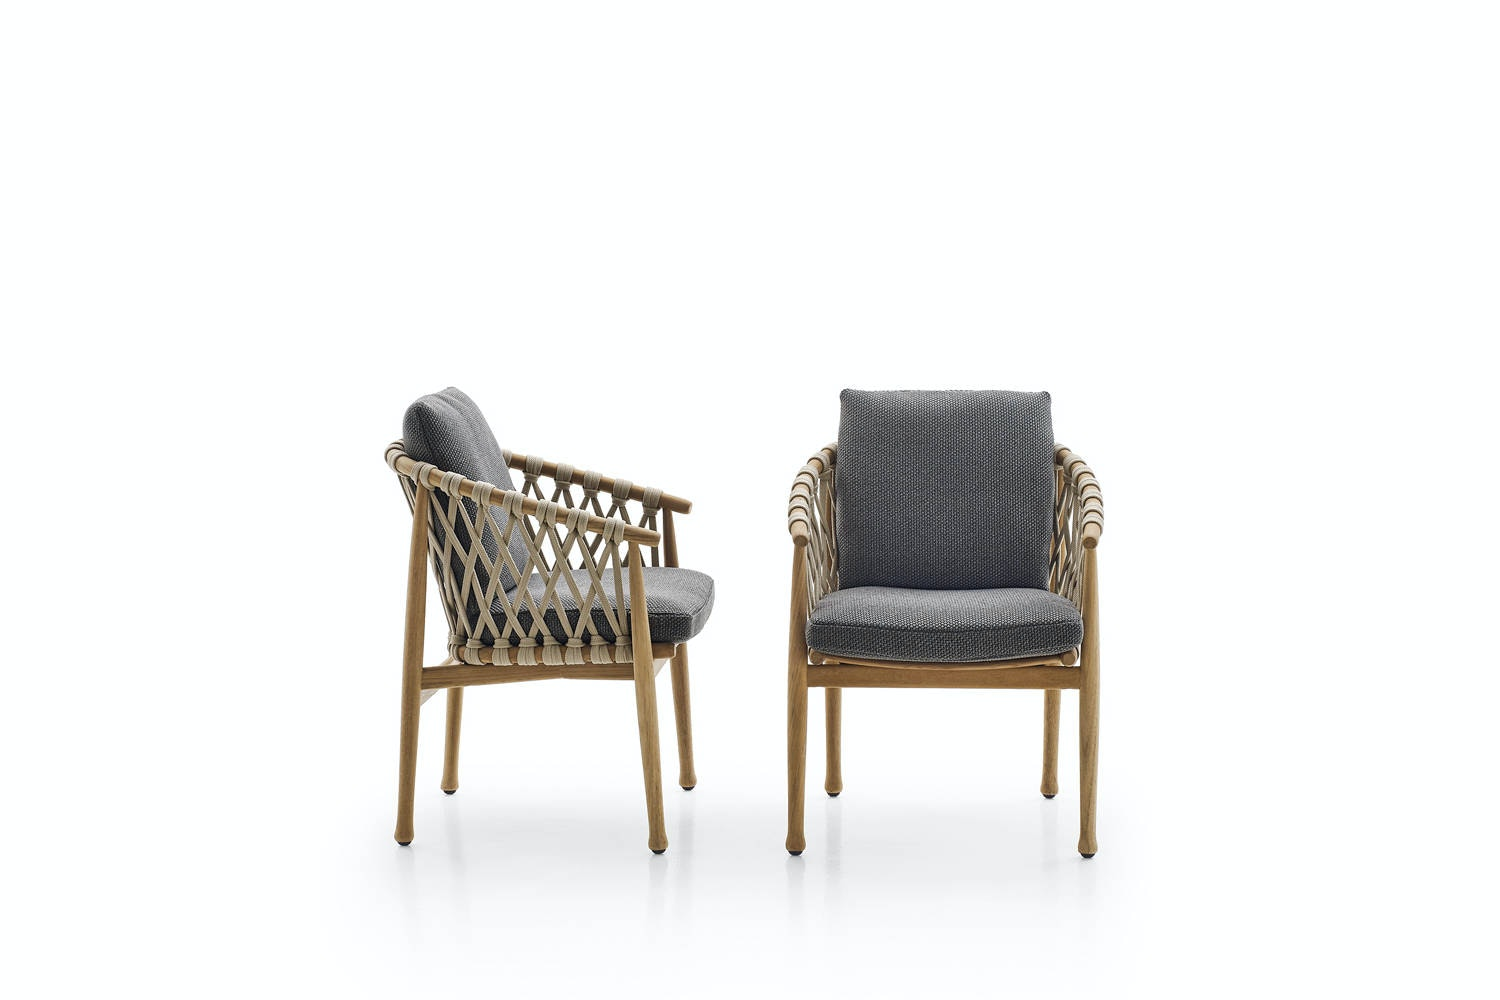 Ginestra Chair by Antonio Citterio for B&B Italia